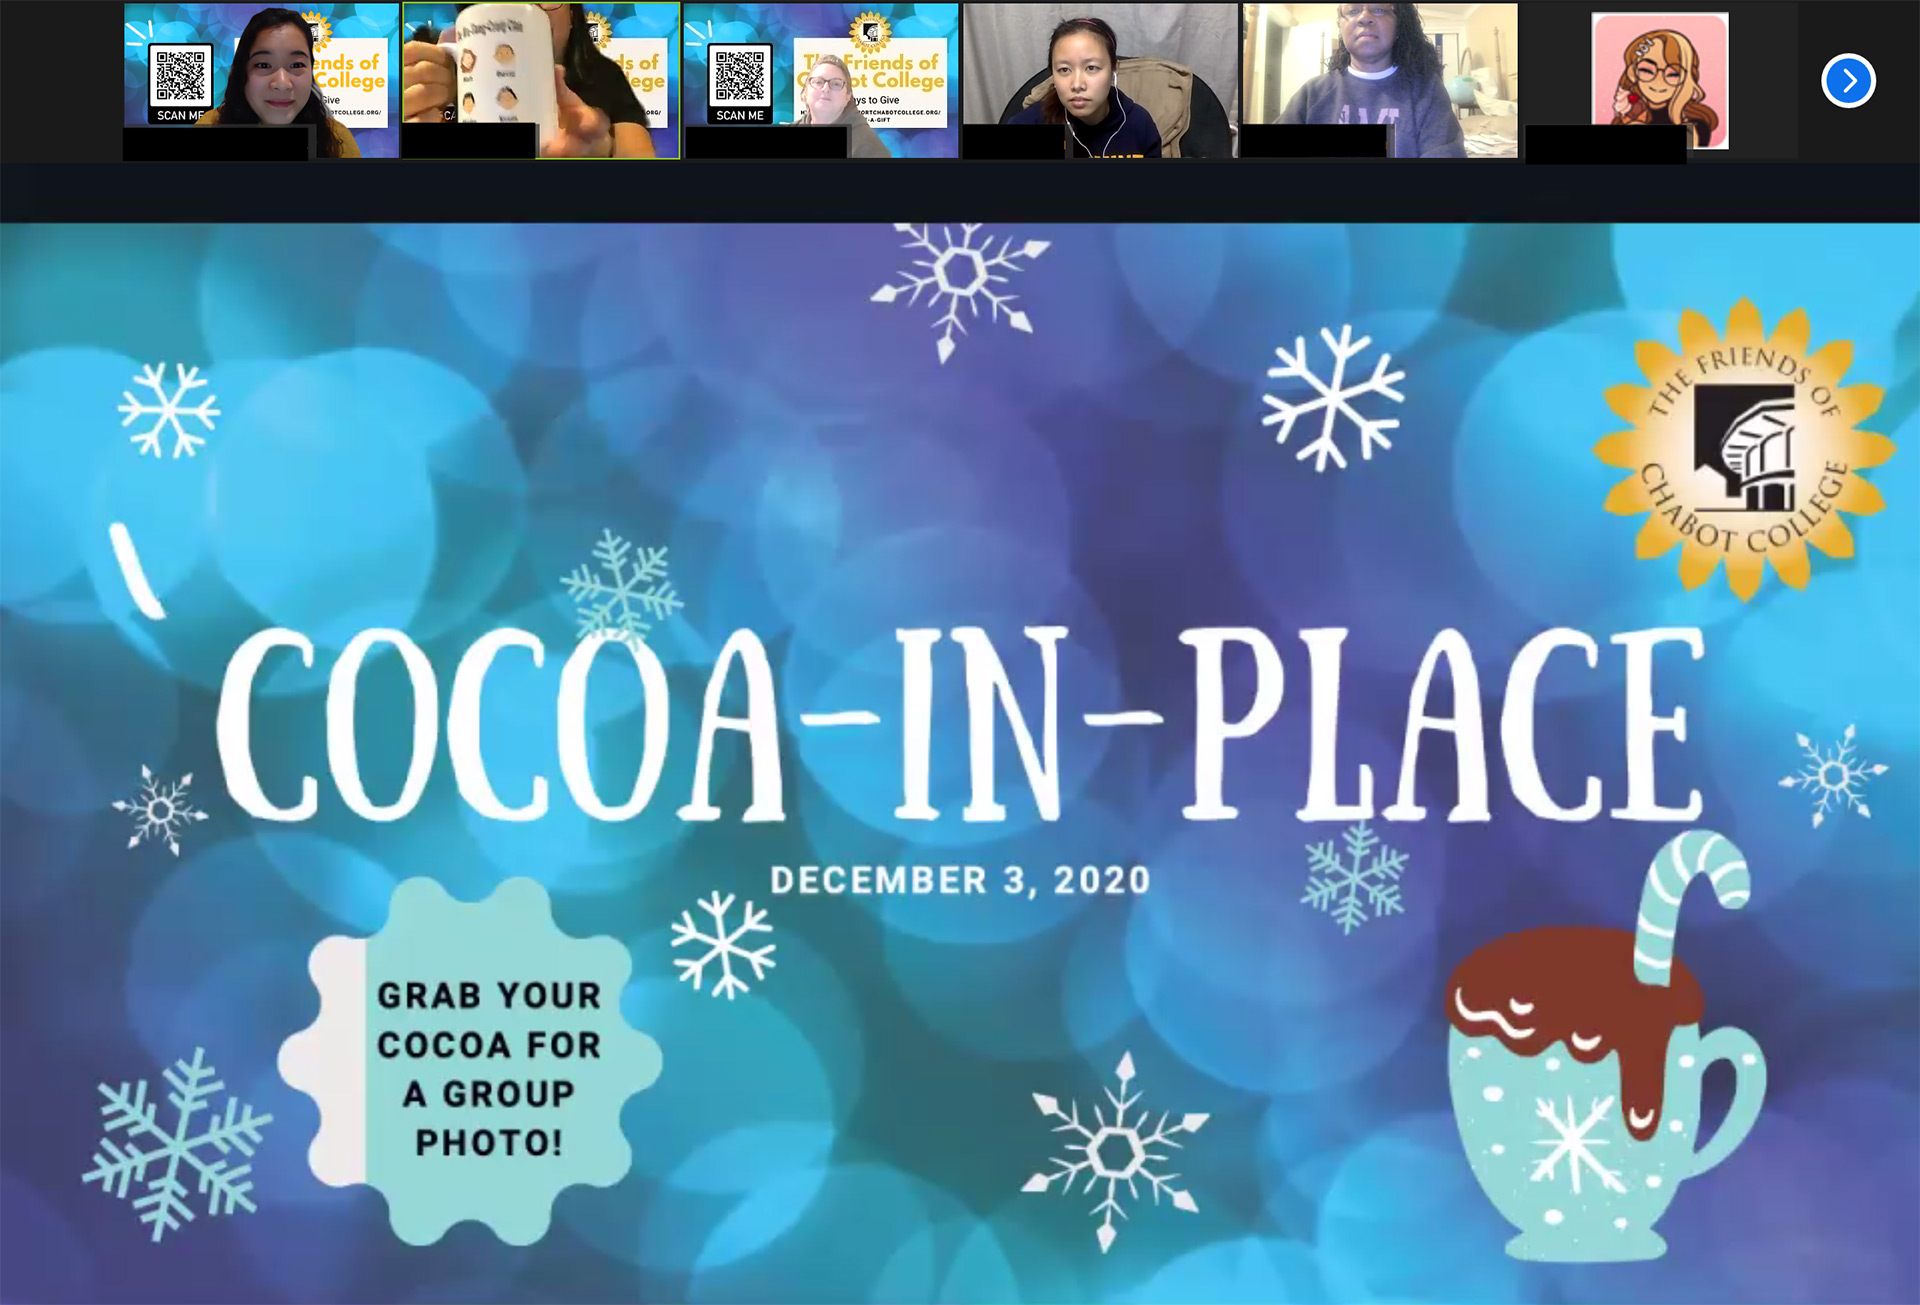 Cocoa-in-Place